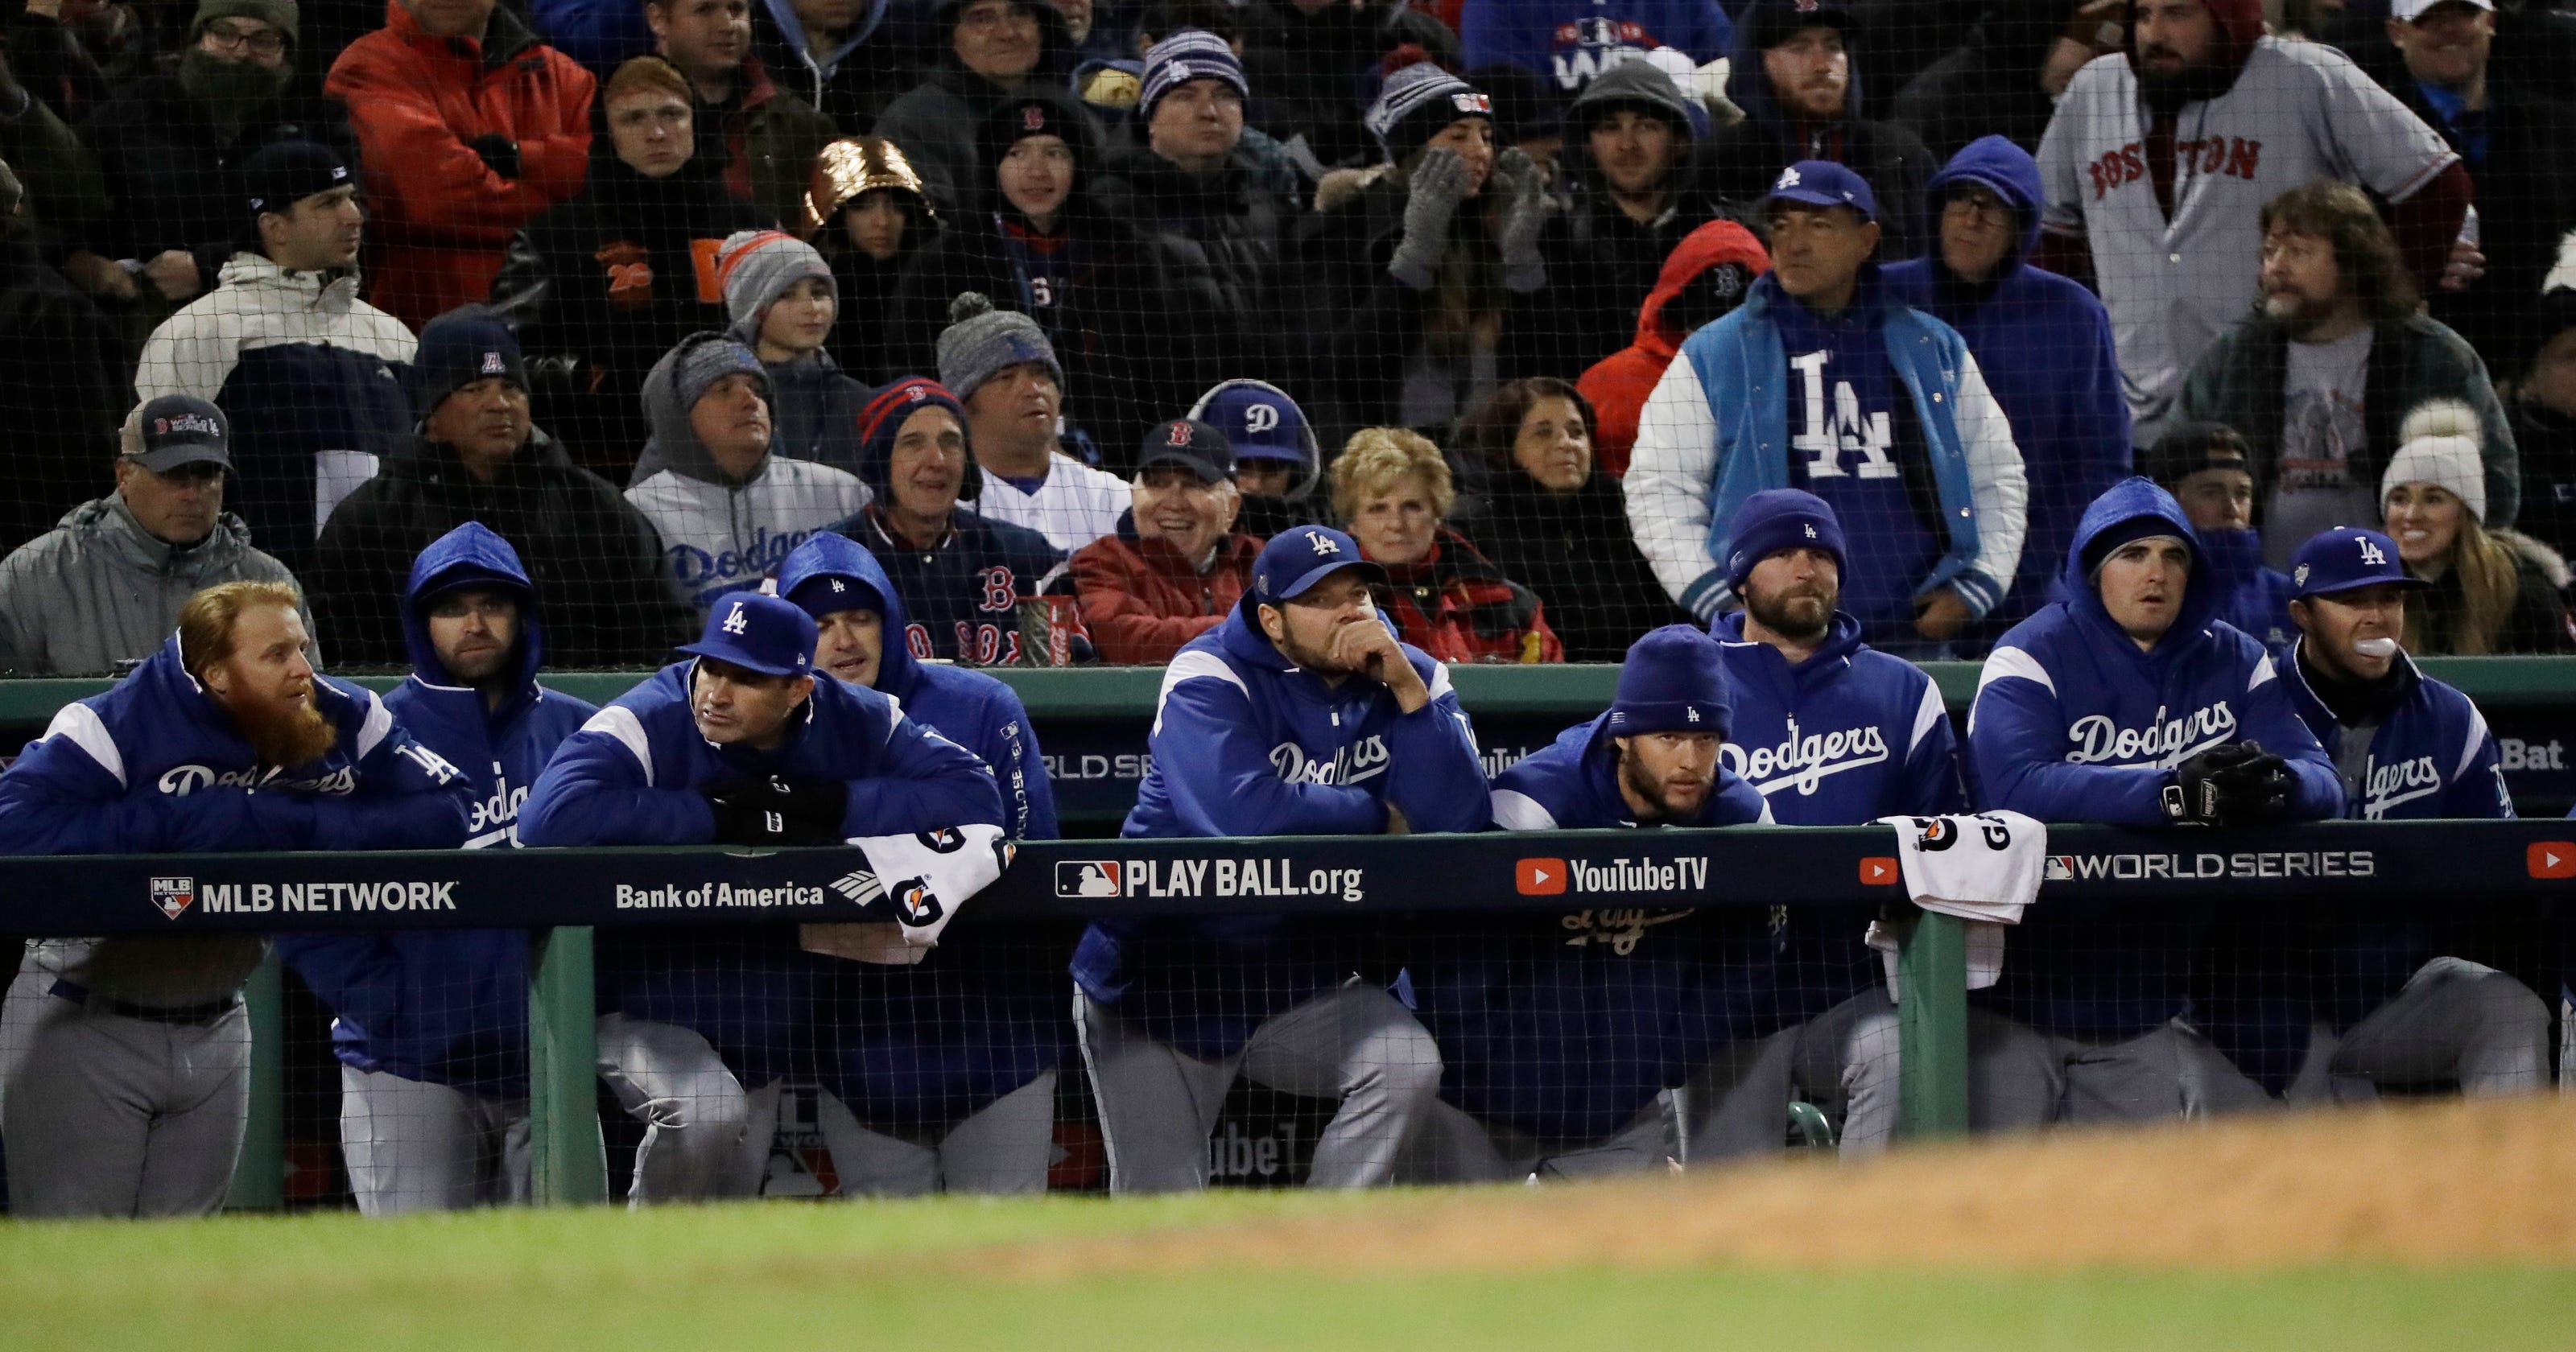 059d841bb4fb Can the Dodgers recover from 0-2 deficit in World Series  History says  probably not.